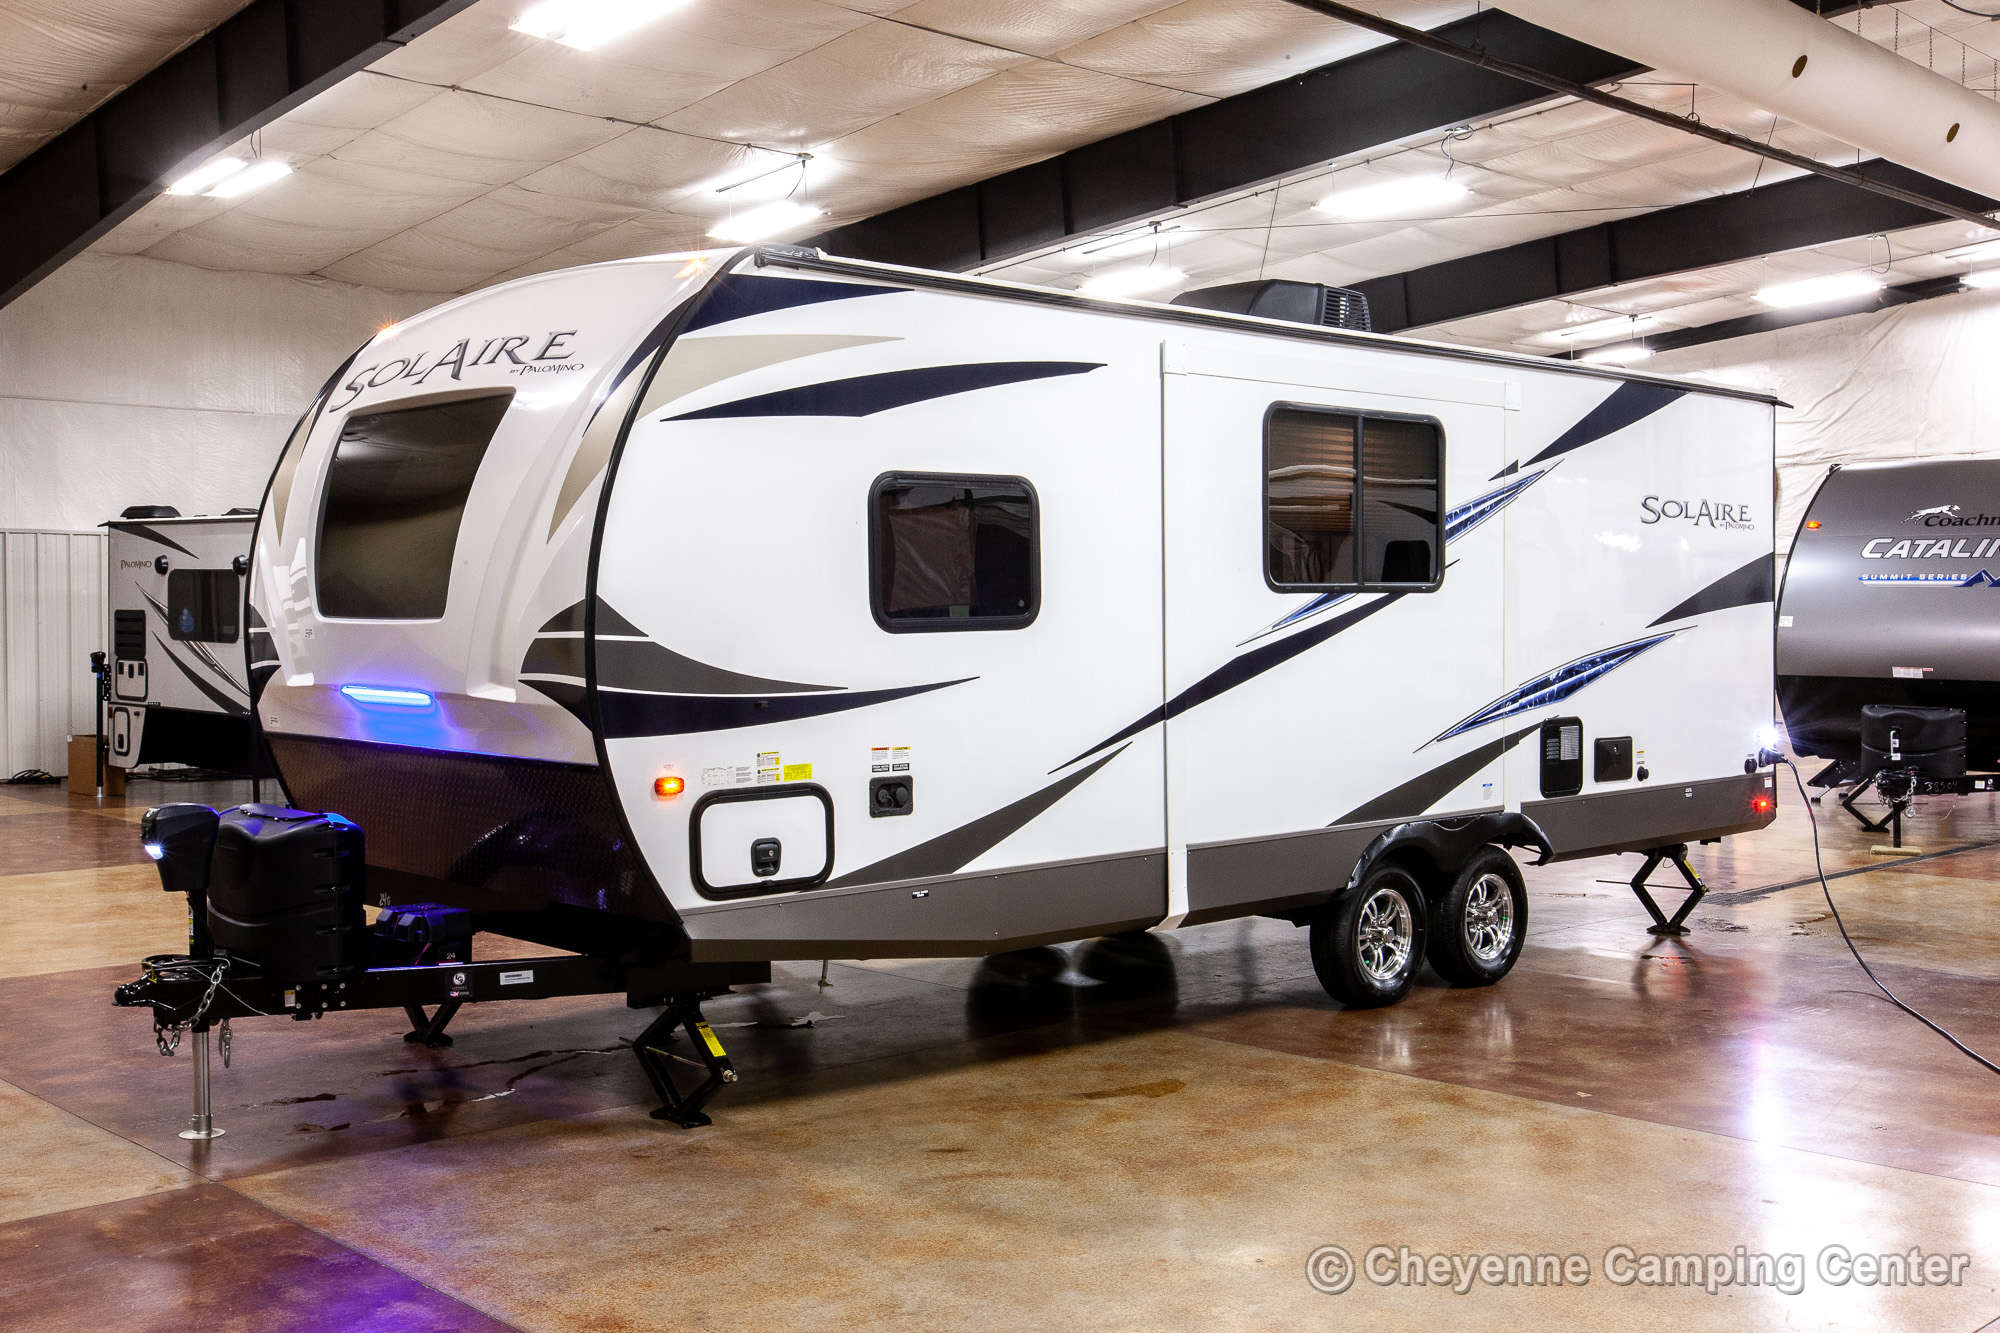 2021 Palomino SolAire Ultra Lite 240BHS Bunkhouse Travel Trailer Exterior Image